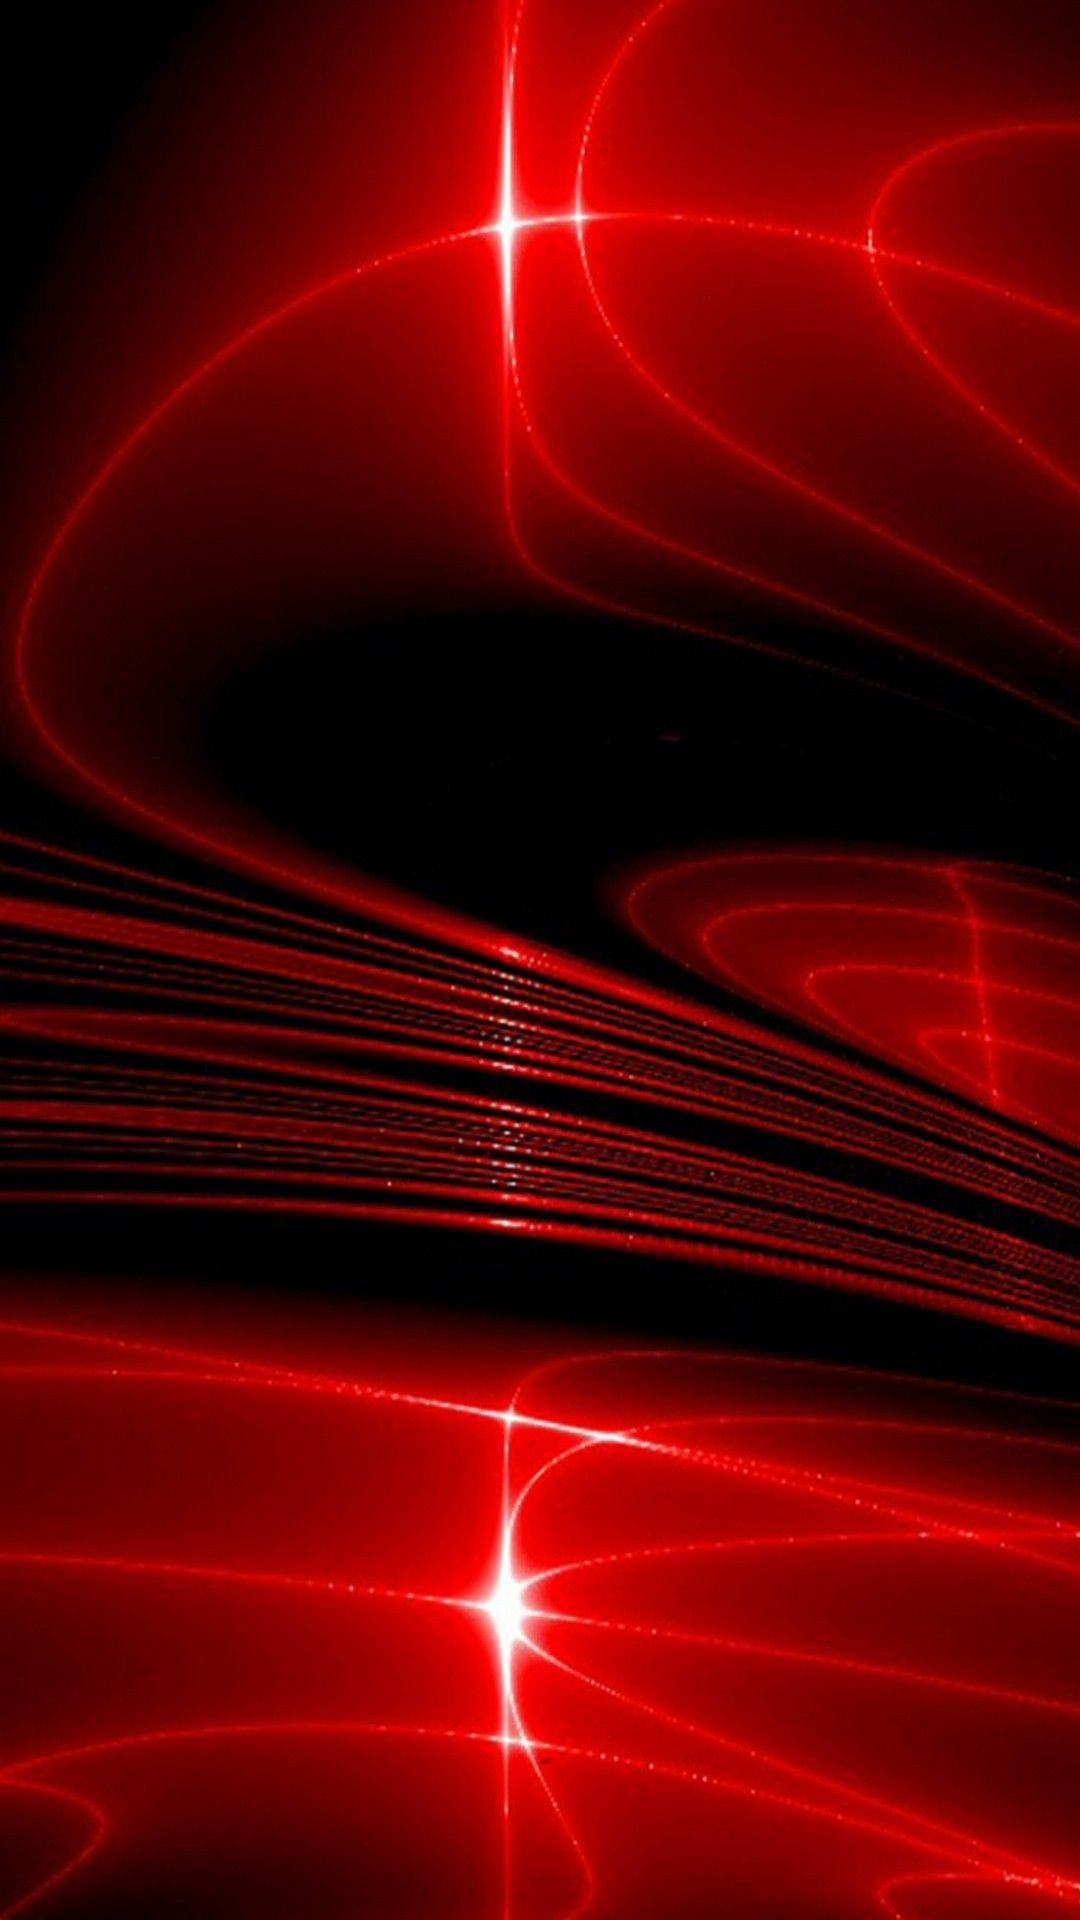 Abstract Red And Gold Wallpaper Download in 2020 Hd cool 1080x1920